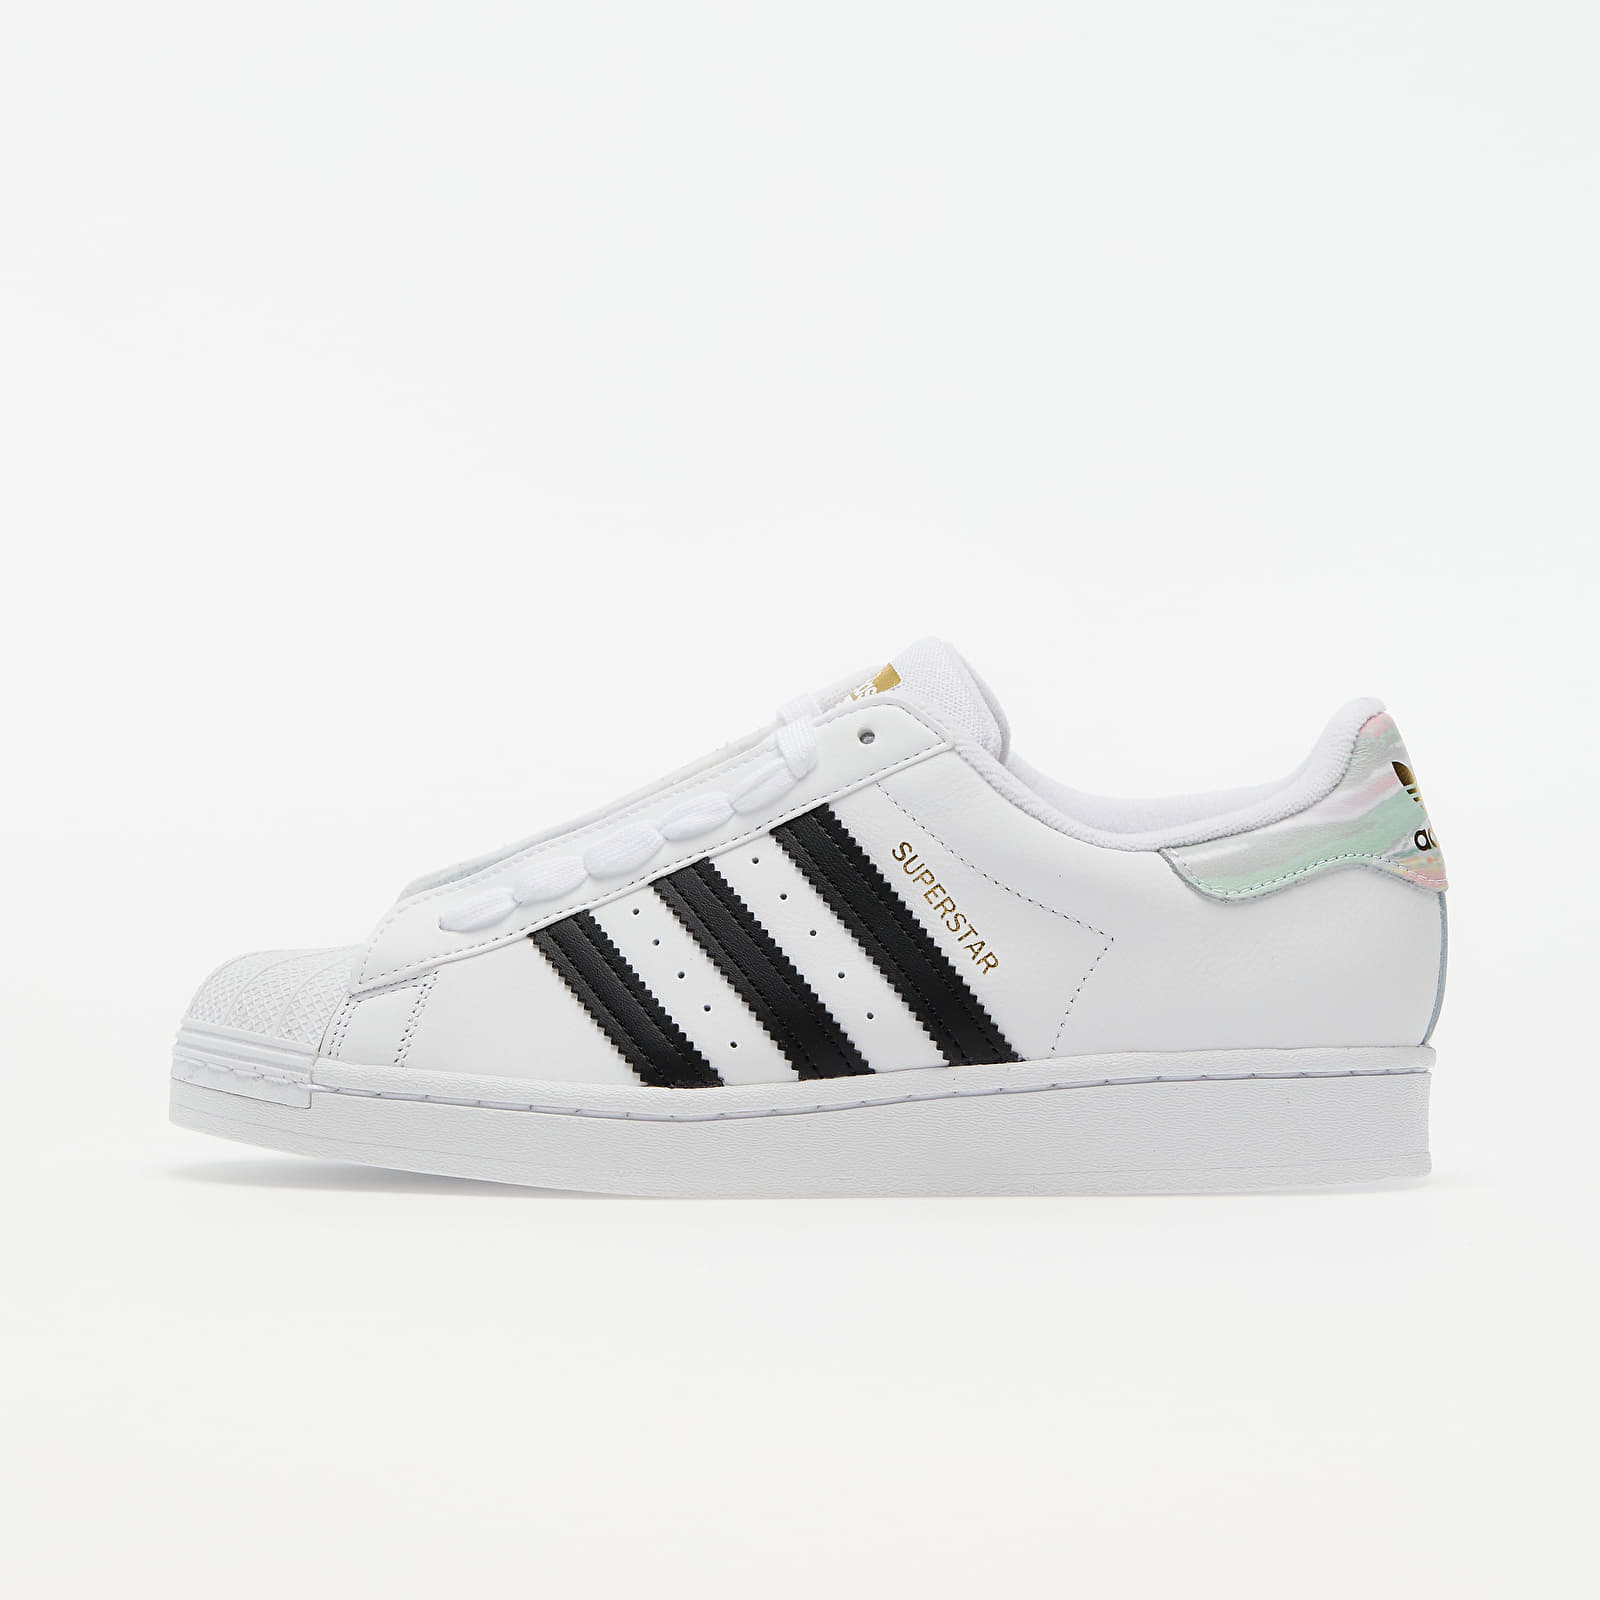 adidas Superstar W Ftw White/ Core Black/ Frozen Green EUR 38